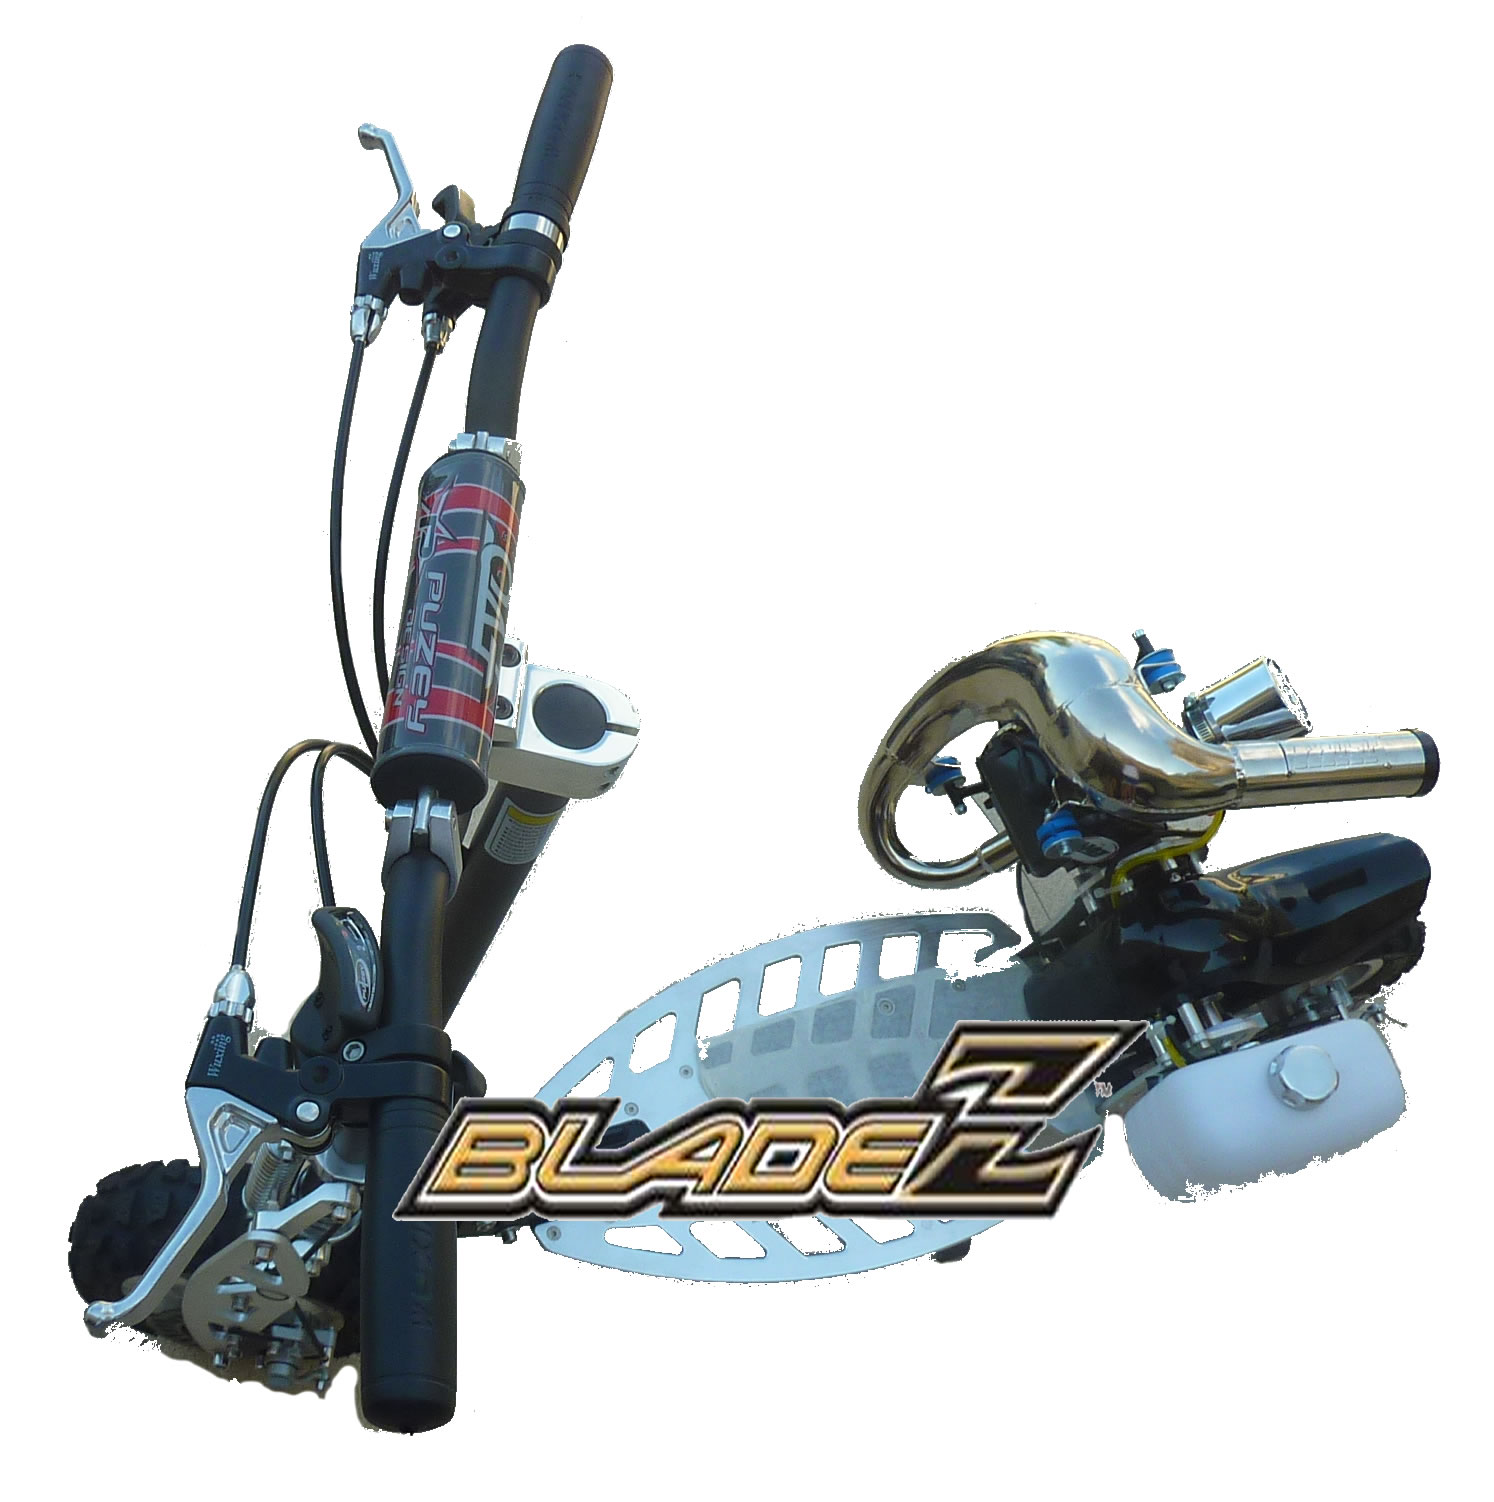 New Products Bladez The Sport Of Commuting Xtr Electric Scooter Wiring Schematics Custom Modified 2 Speed 50cc With Powerpipe